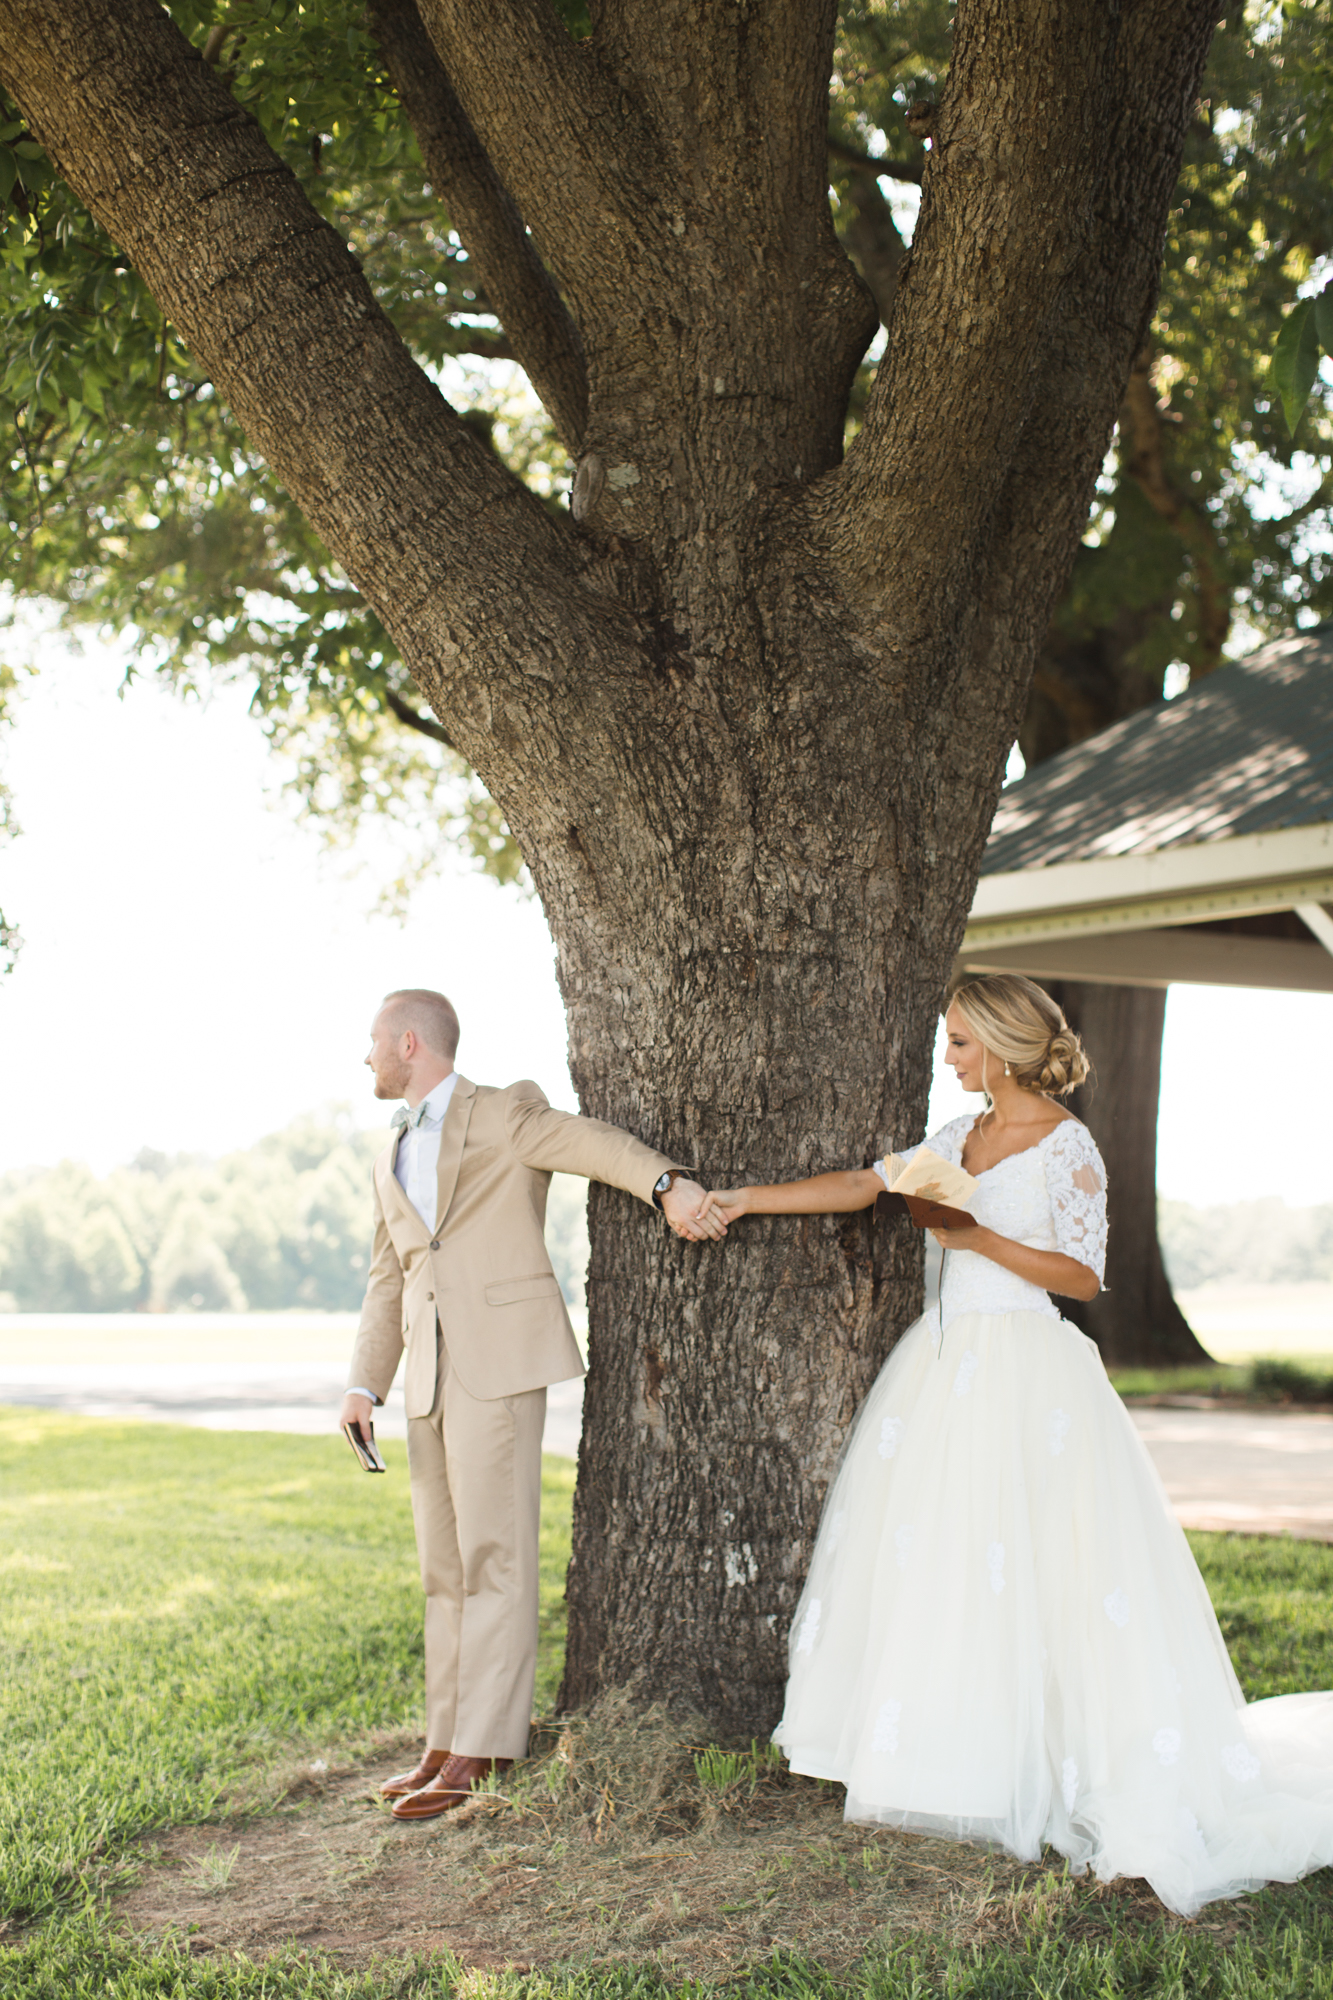 lauren+lucas rock hill south carolina wedding-6497.jpg